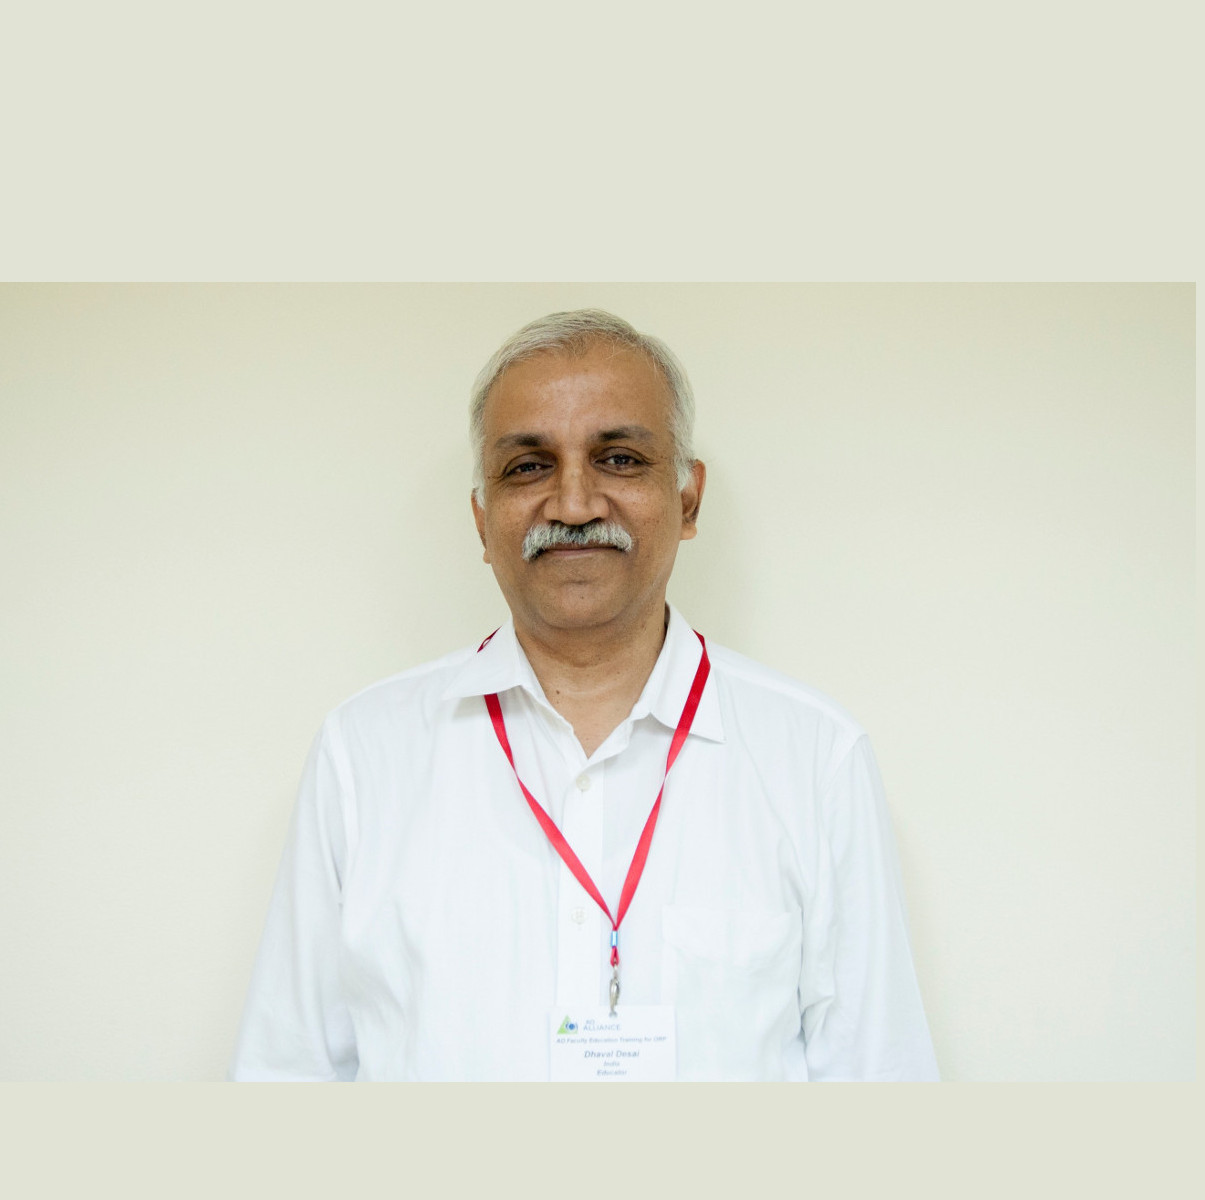 Profile of Dr Dhaval Desai: A longtime AO Alliance faculty member